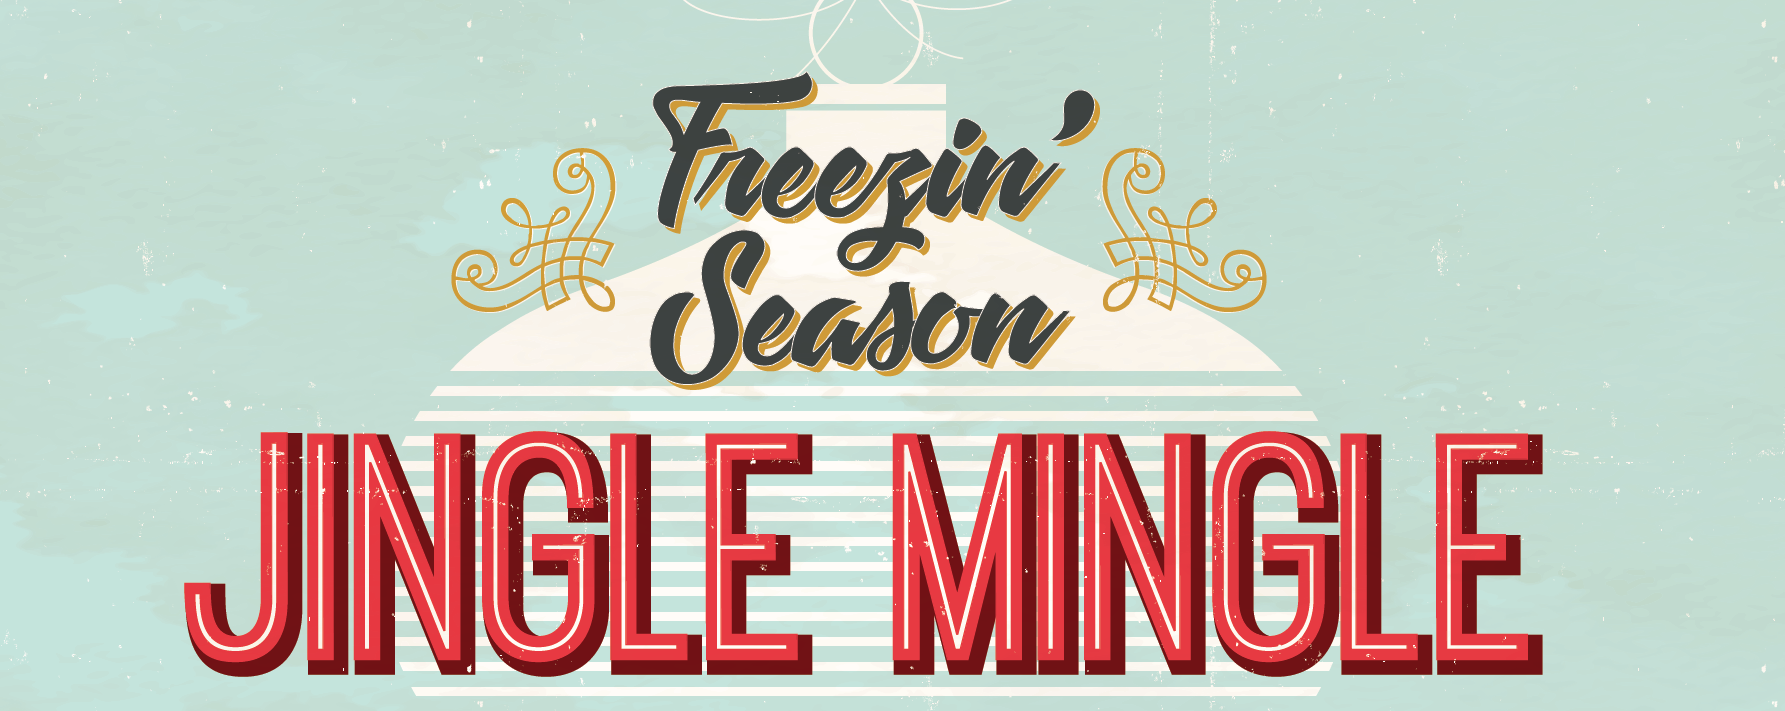 Annual Freezin' Season Jingle Mingle